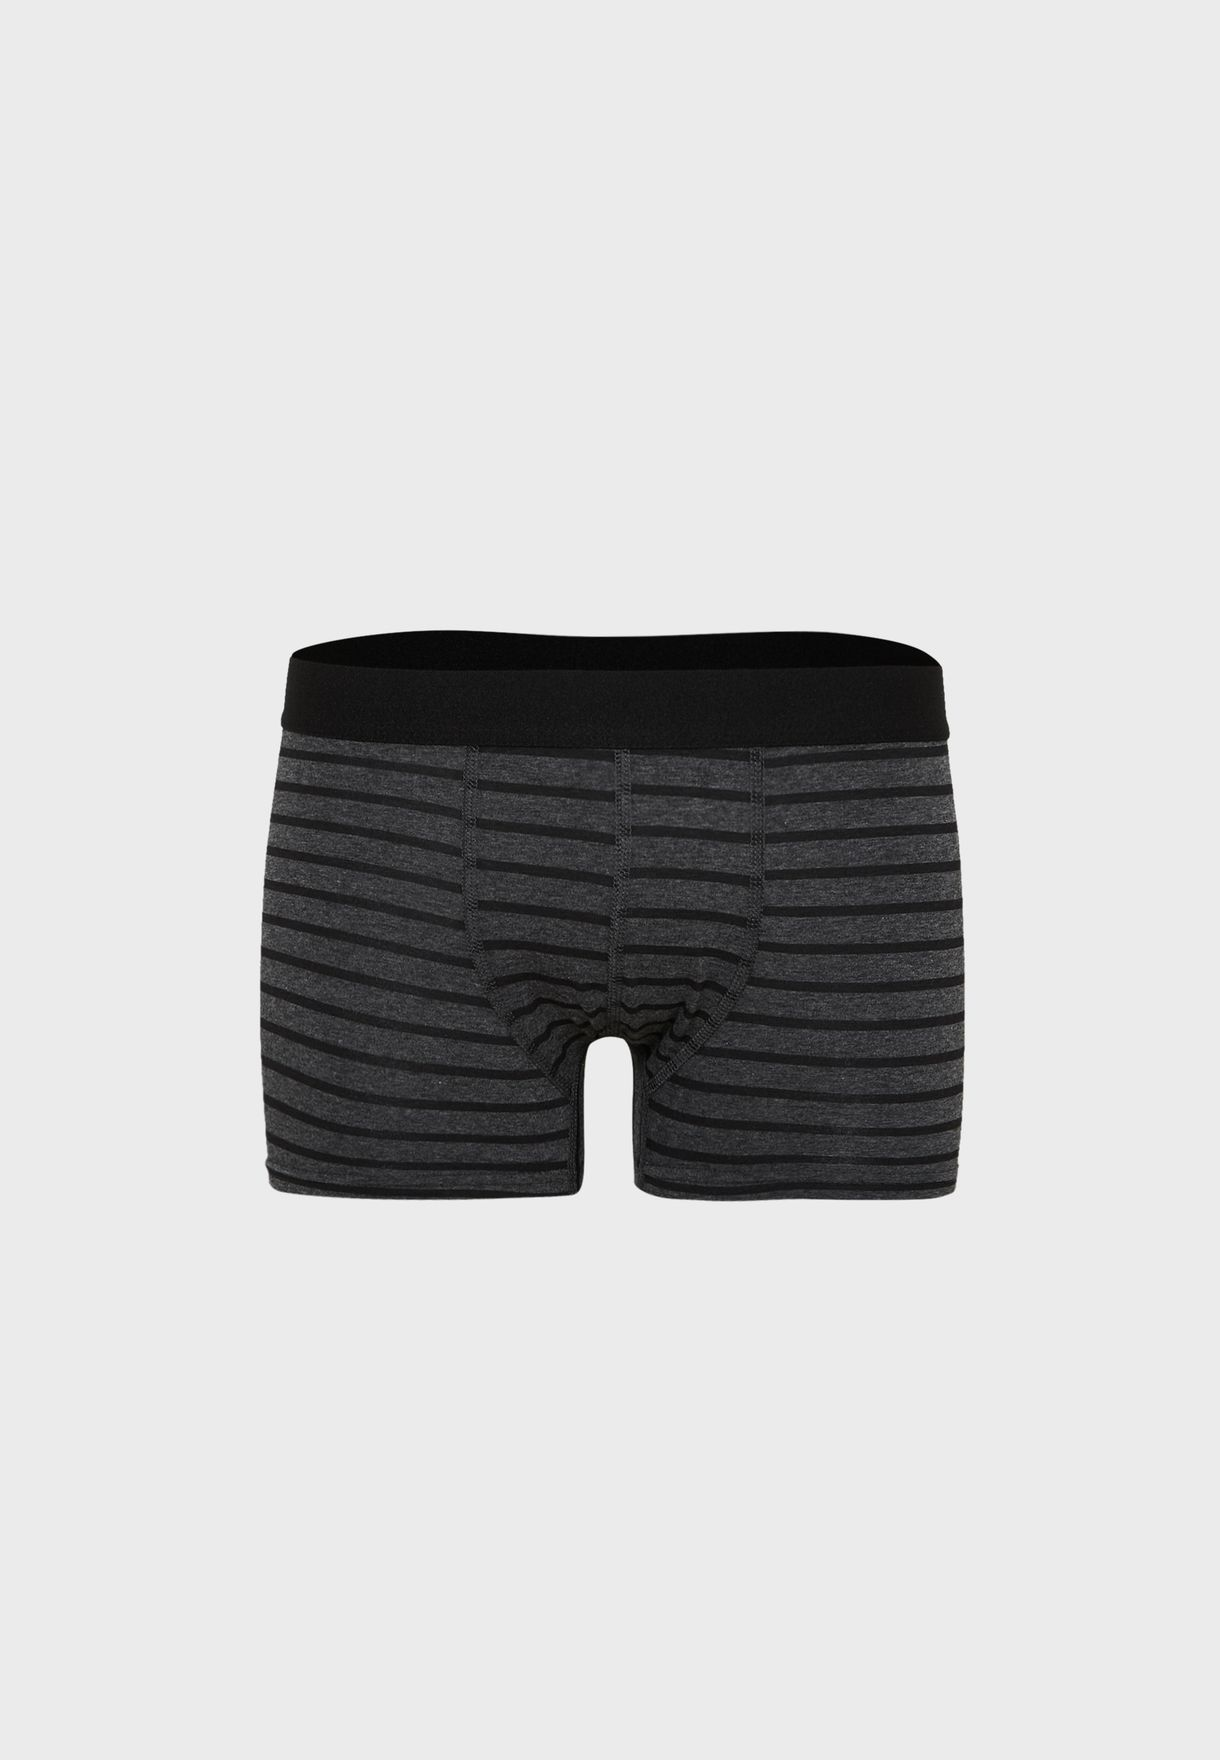 5 Pack Assorted Trunks